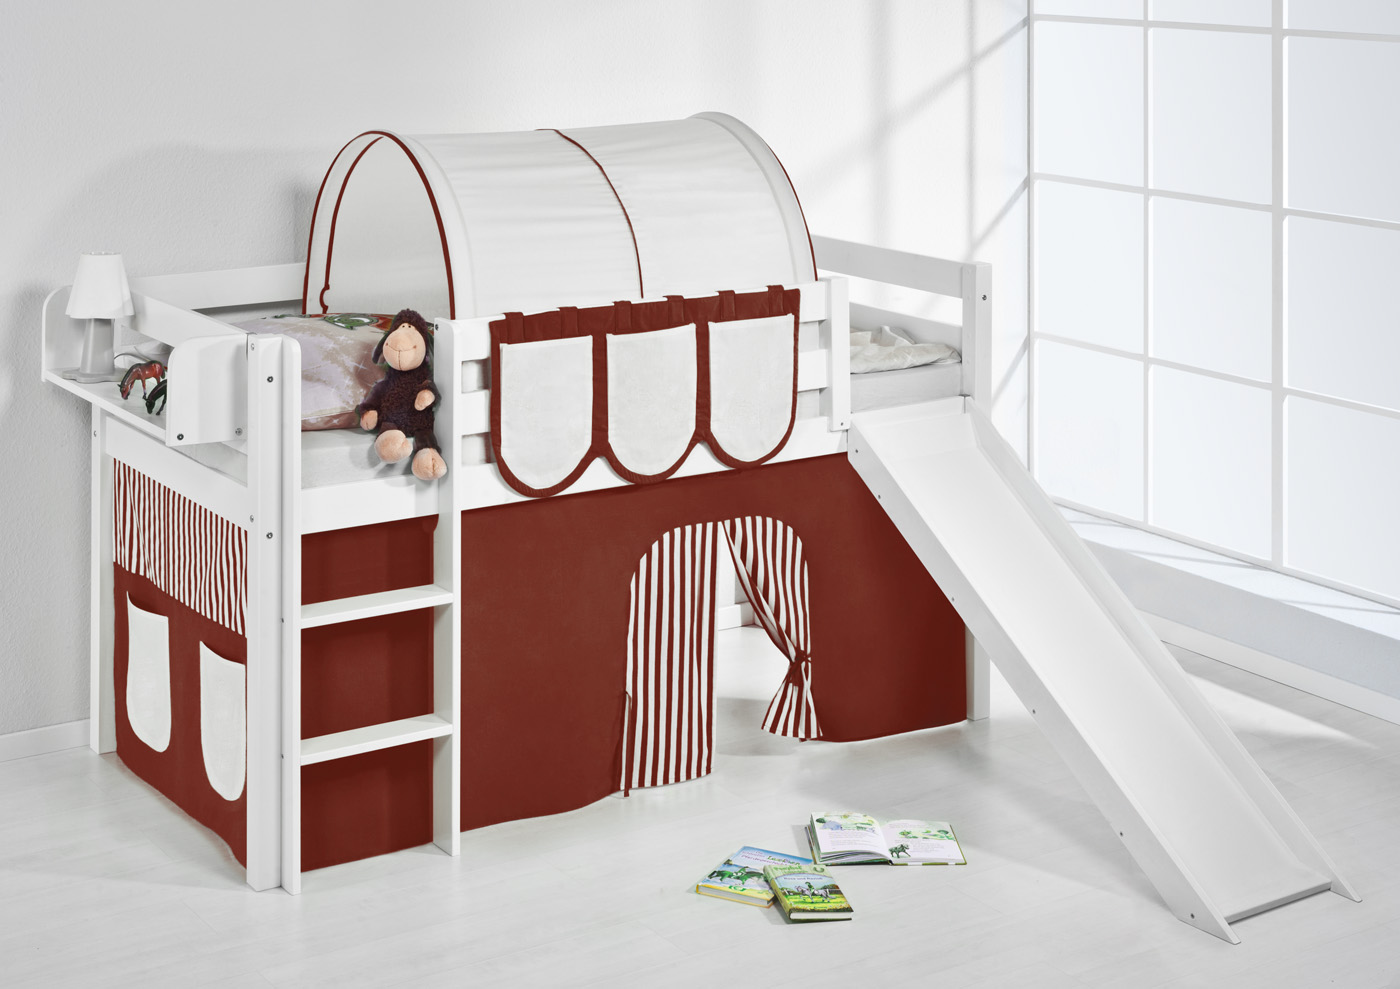 spielbett hochbett kinderbett jelle 190x90 weiss mit rutsche lilokids ebay. Black Bedroom Furniture Sets. Home Design Ideas